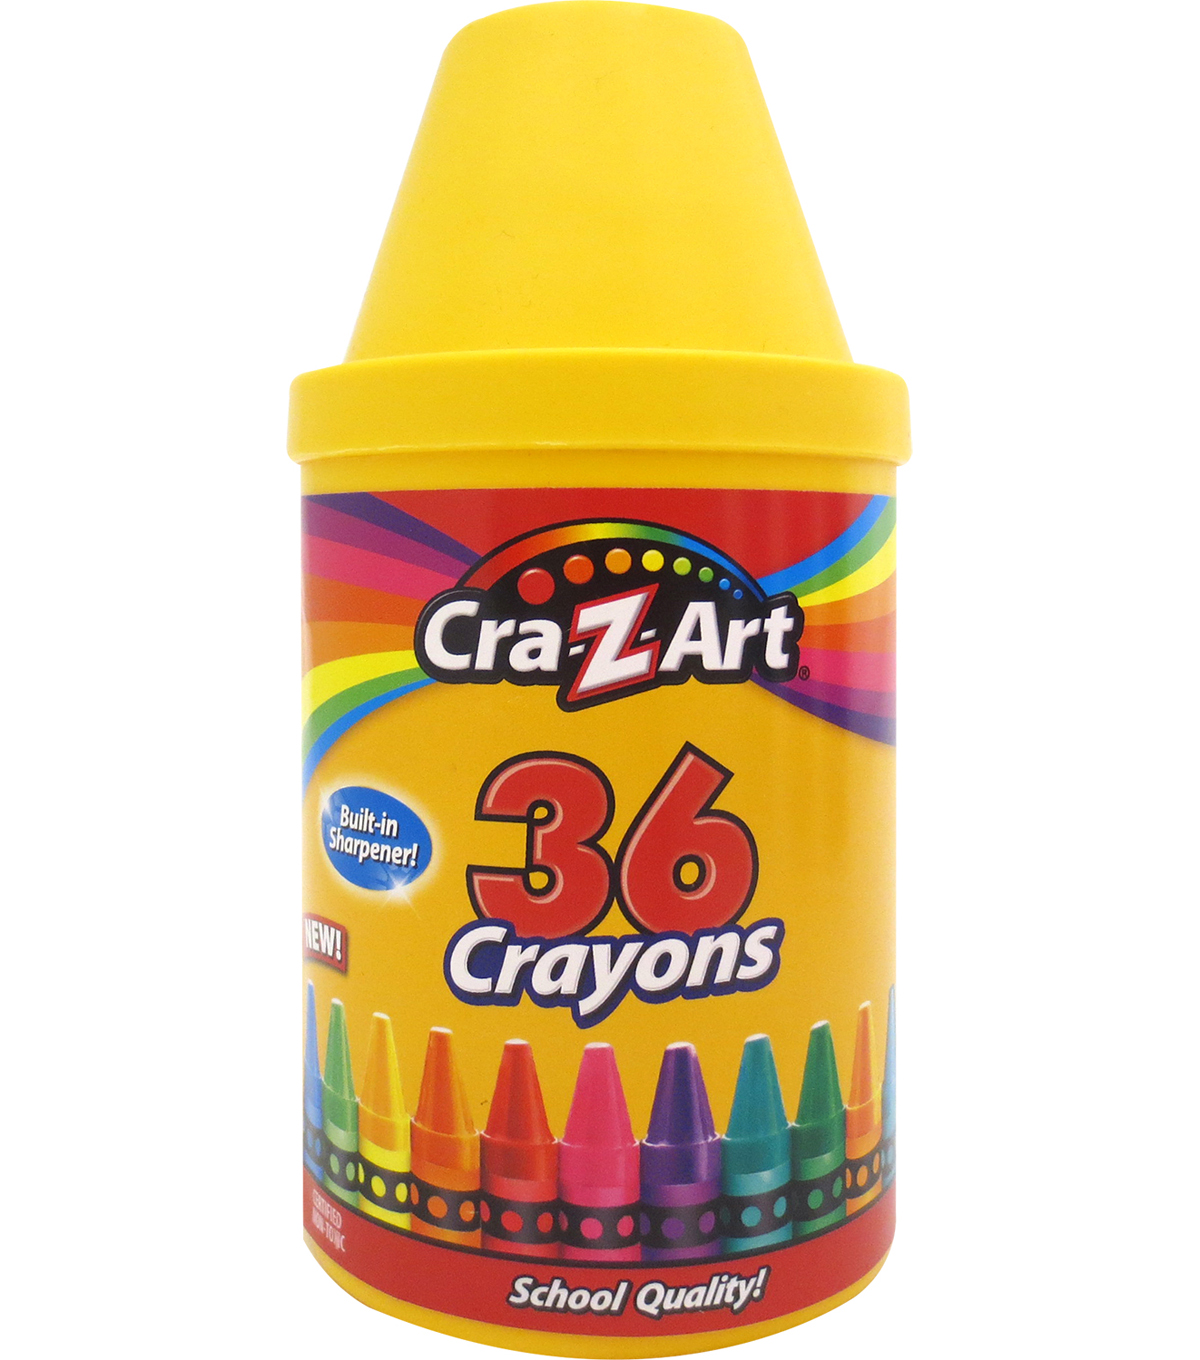 Cra-Z-Art 36 pk Crayons with Built-in Sharpener